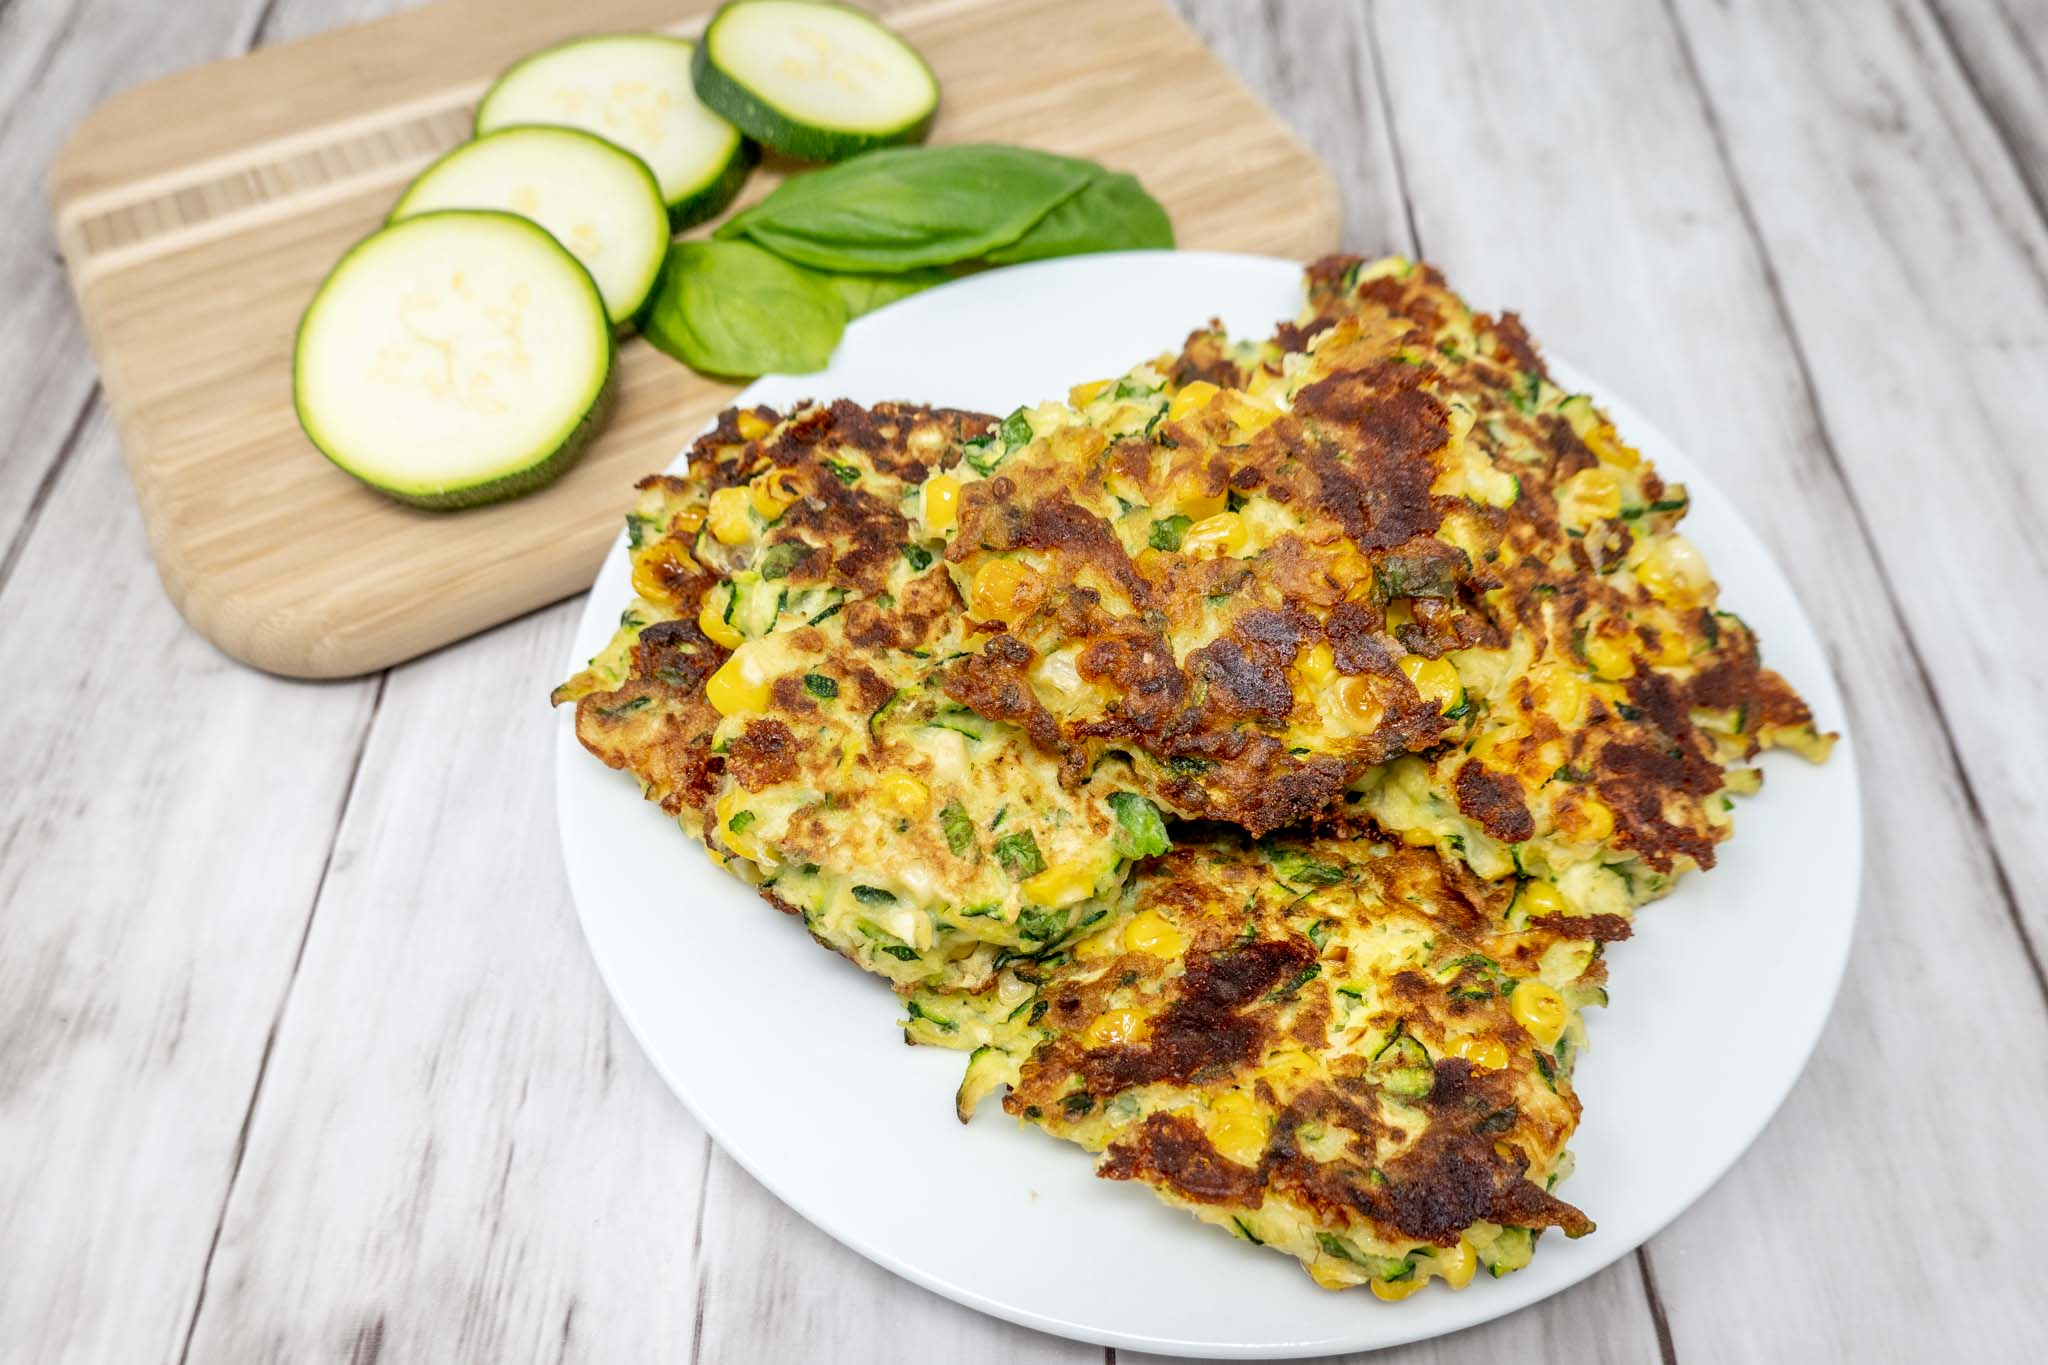 Corn zucchini fritters on a plate